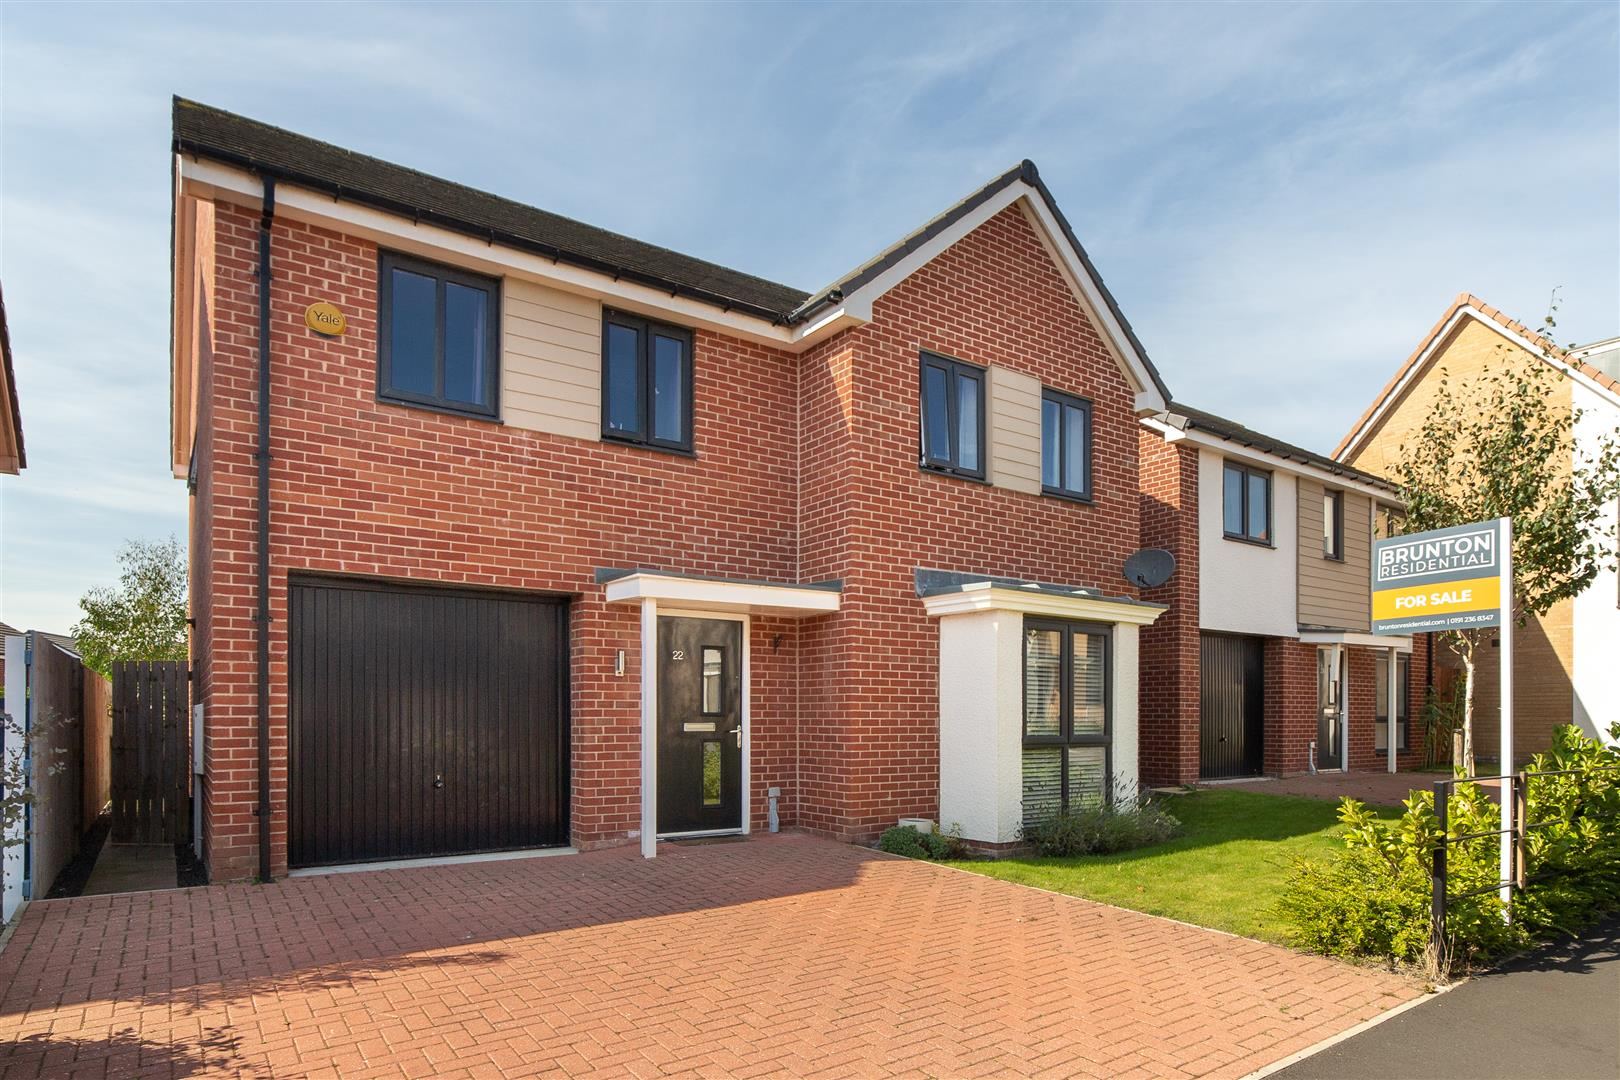 4 bed detached house for sale in Newcastle Upon Tyne, NE13 9BY, NE13